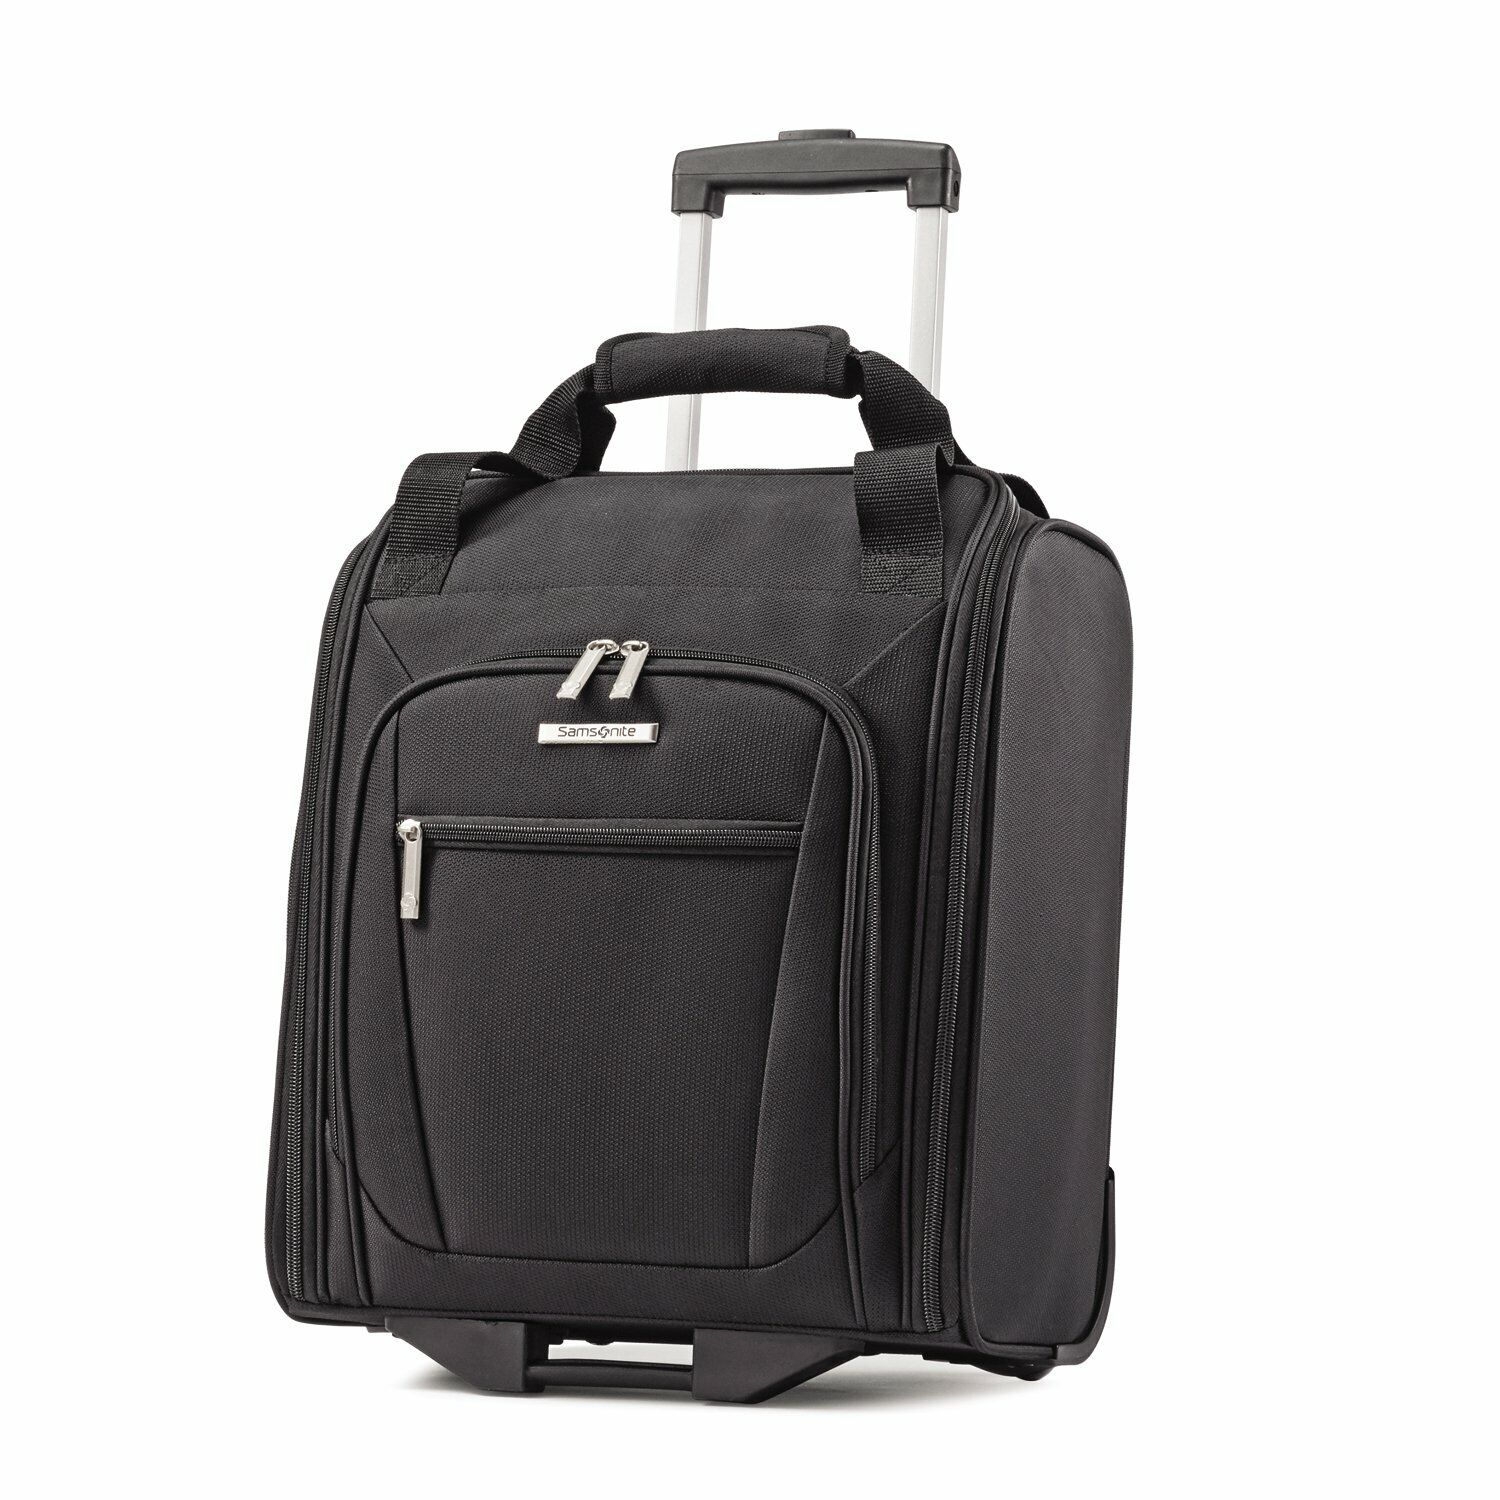 Samsonite Ascella Wheeled Underseat Carry On Luggage Black